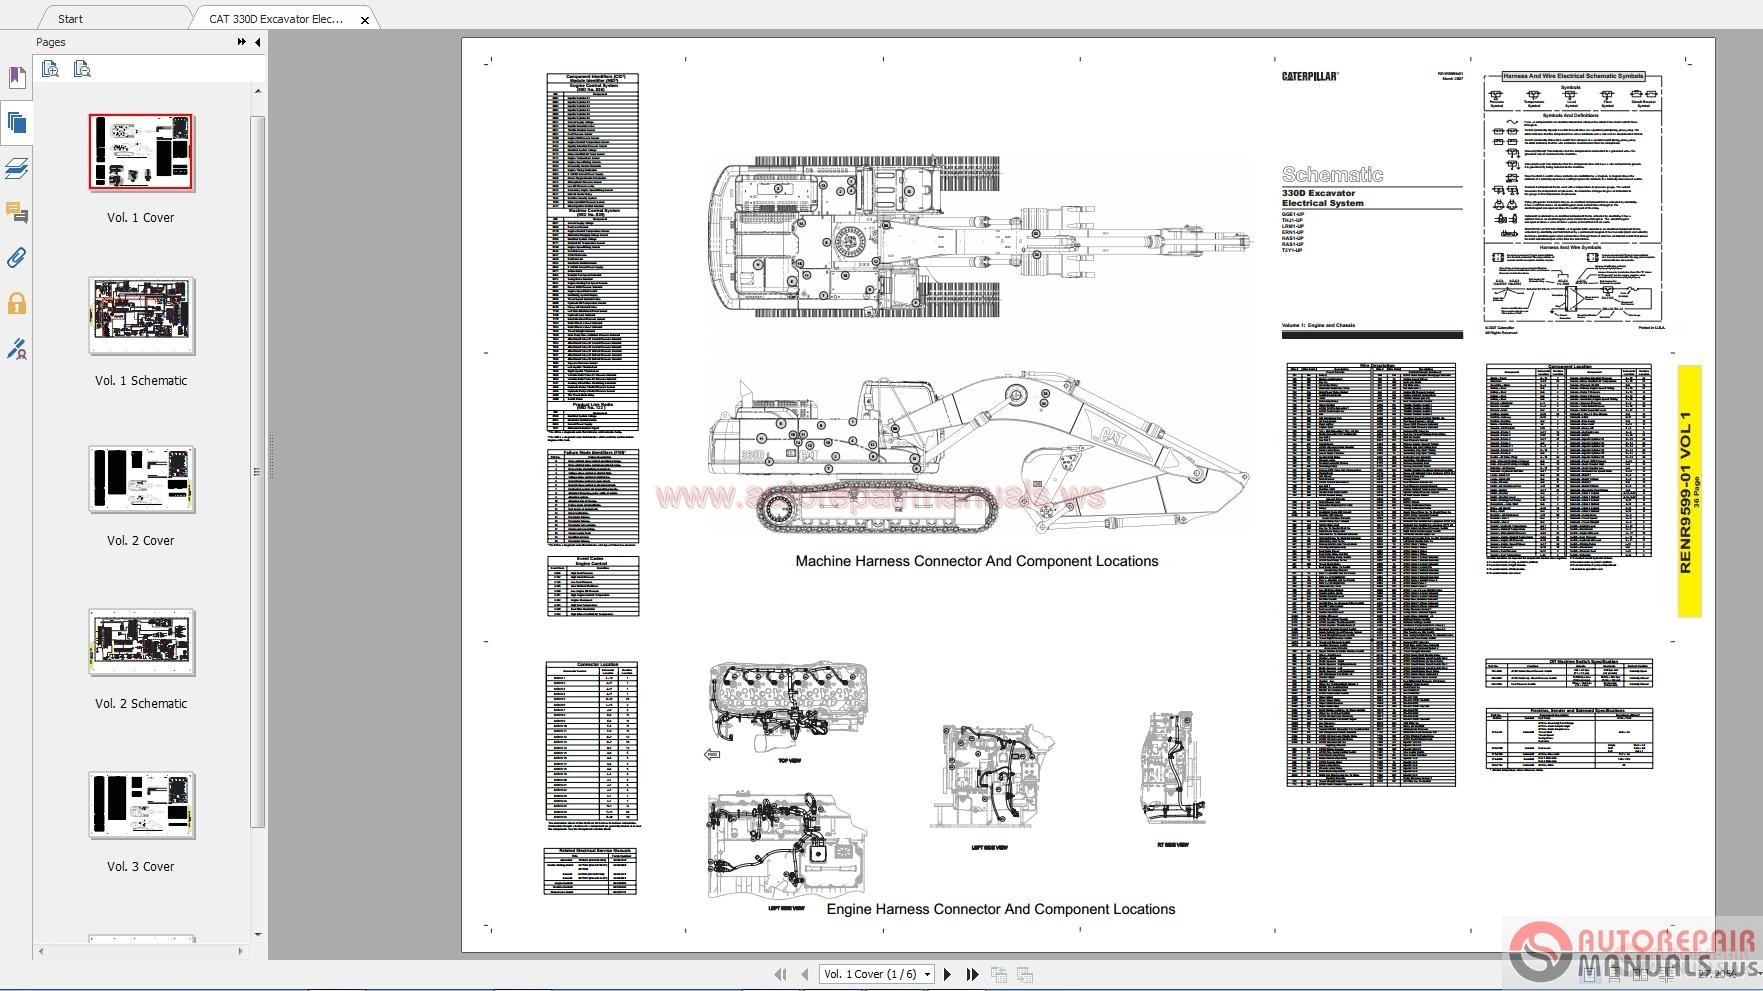 Caterpillar Service Manualschematic Parts Manual Operation And Maintenance Manual Full Dvd Part